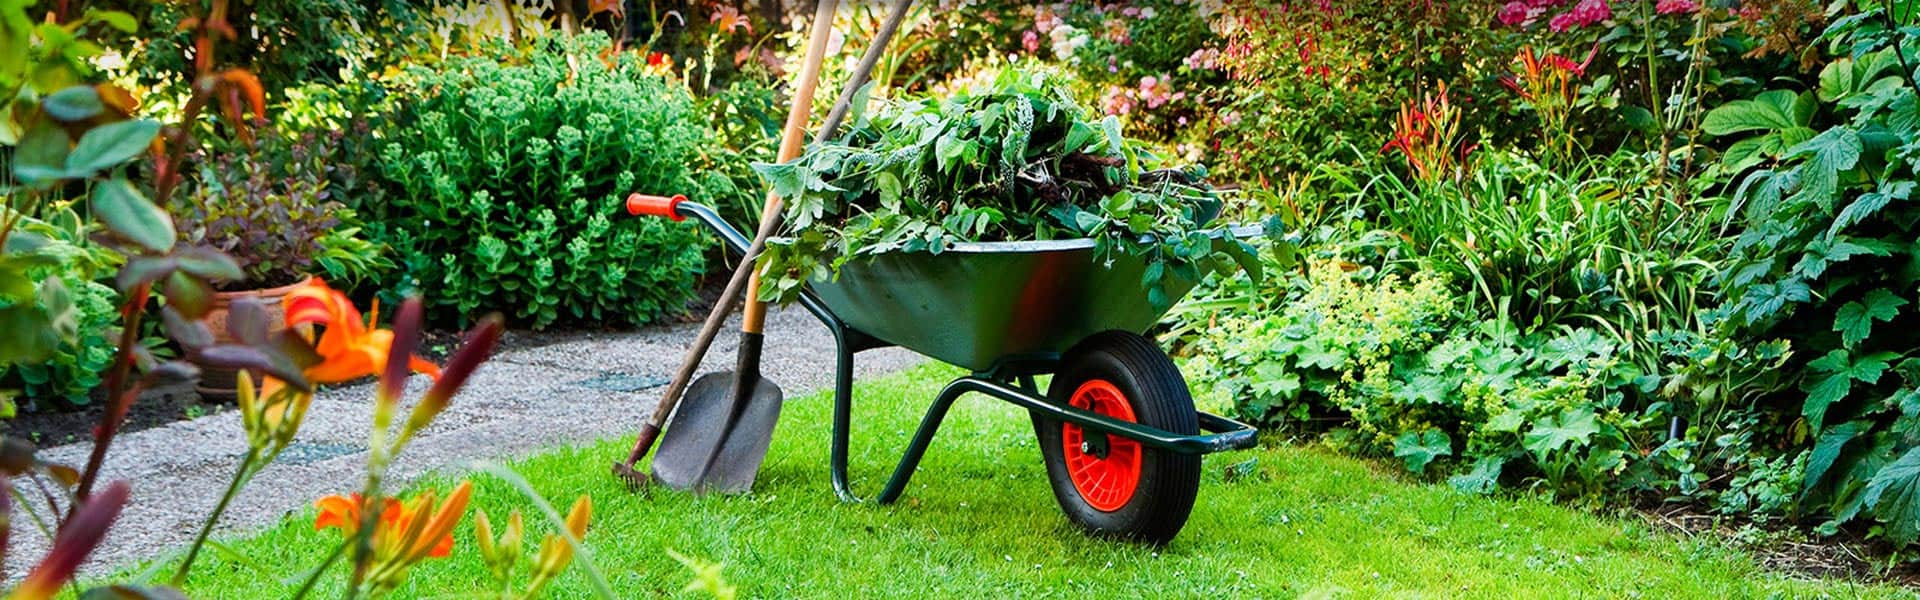 Best Garden Cart 2019 – Buying Guide and Reviews